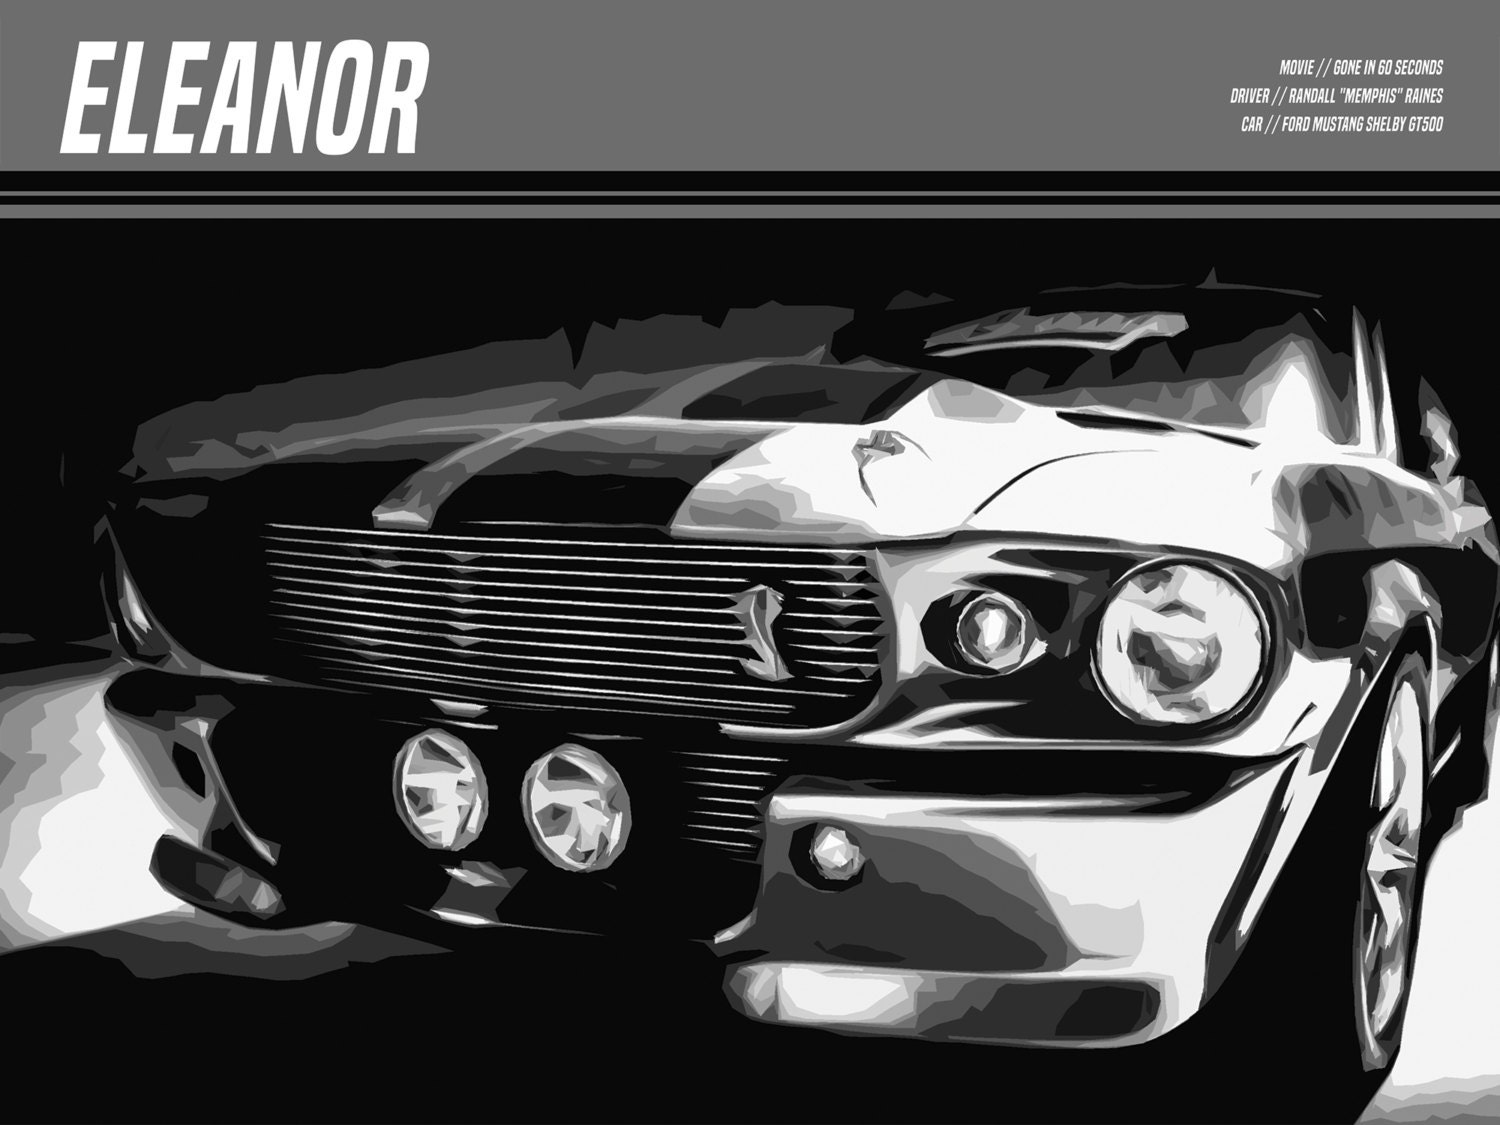 Eleanor Poster Ford Mustang Shelby Gt500 Gone In 60